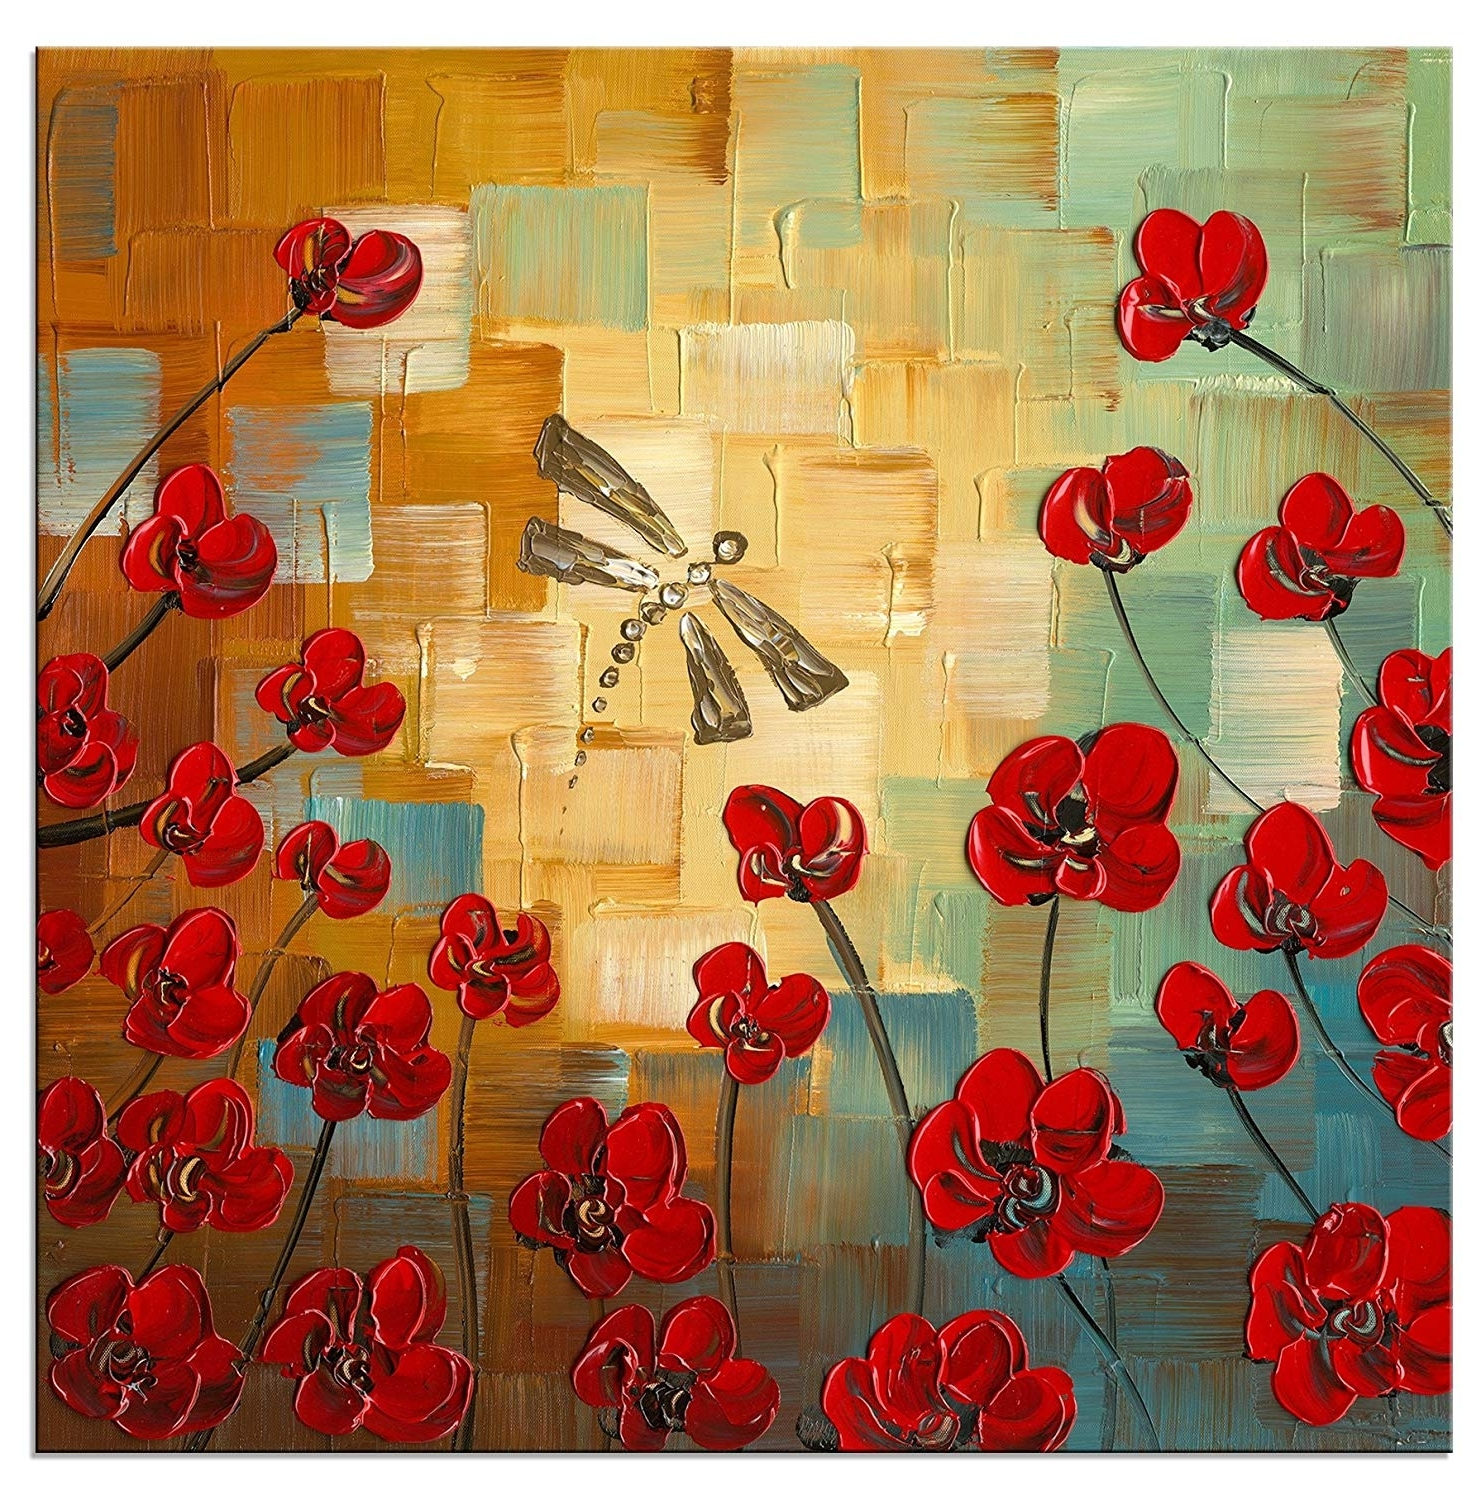 [%Amazon: Wieco Art Dragonfly Modern Flowers Artwork 100% Hand Pertaining To Preferred Wall Art Paintings|Wall Art Paintings With Regard To 2017 Amazon: Wieco Art Dragonfly Modern Flowers Artwork 100% Hand|Current Wall Art Paintings Pertaining To Amazon: Wieco Art Dragonfly Modern Flowers Artwork 100% Hand|Favorite Amazon: Wieco Art Dragonfly Modern Flowers Artwork 100% Hand Within Wall Art Paintings%] (View 2 of 15)